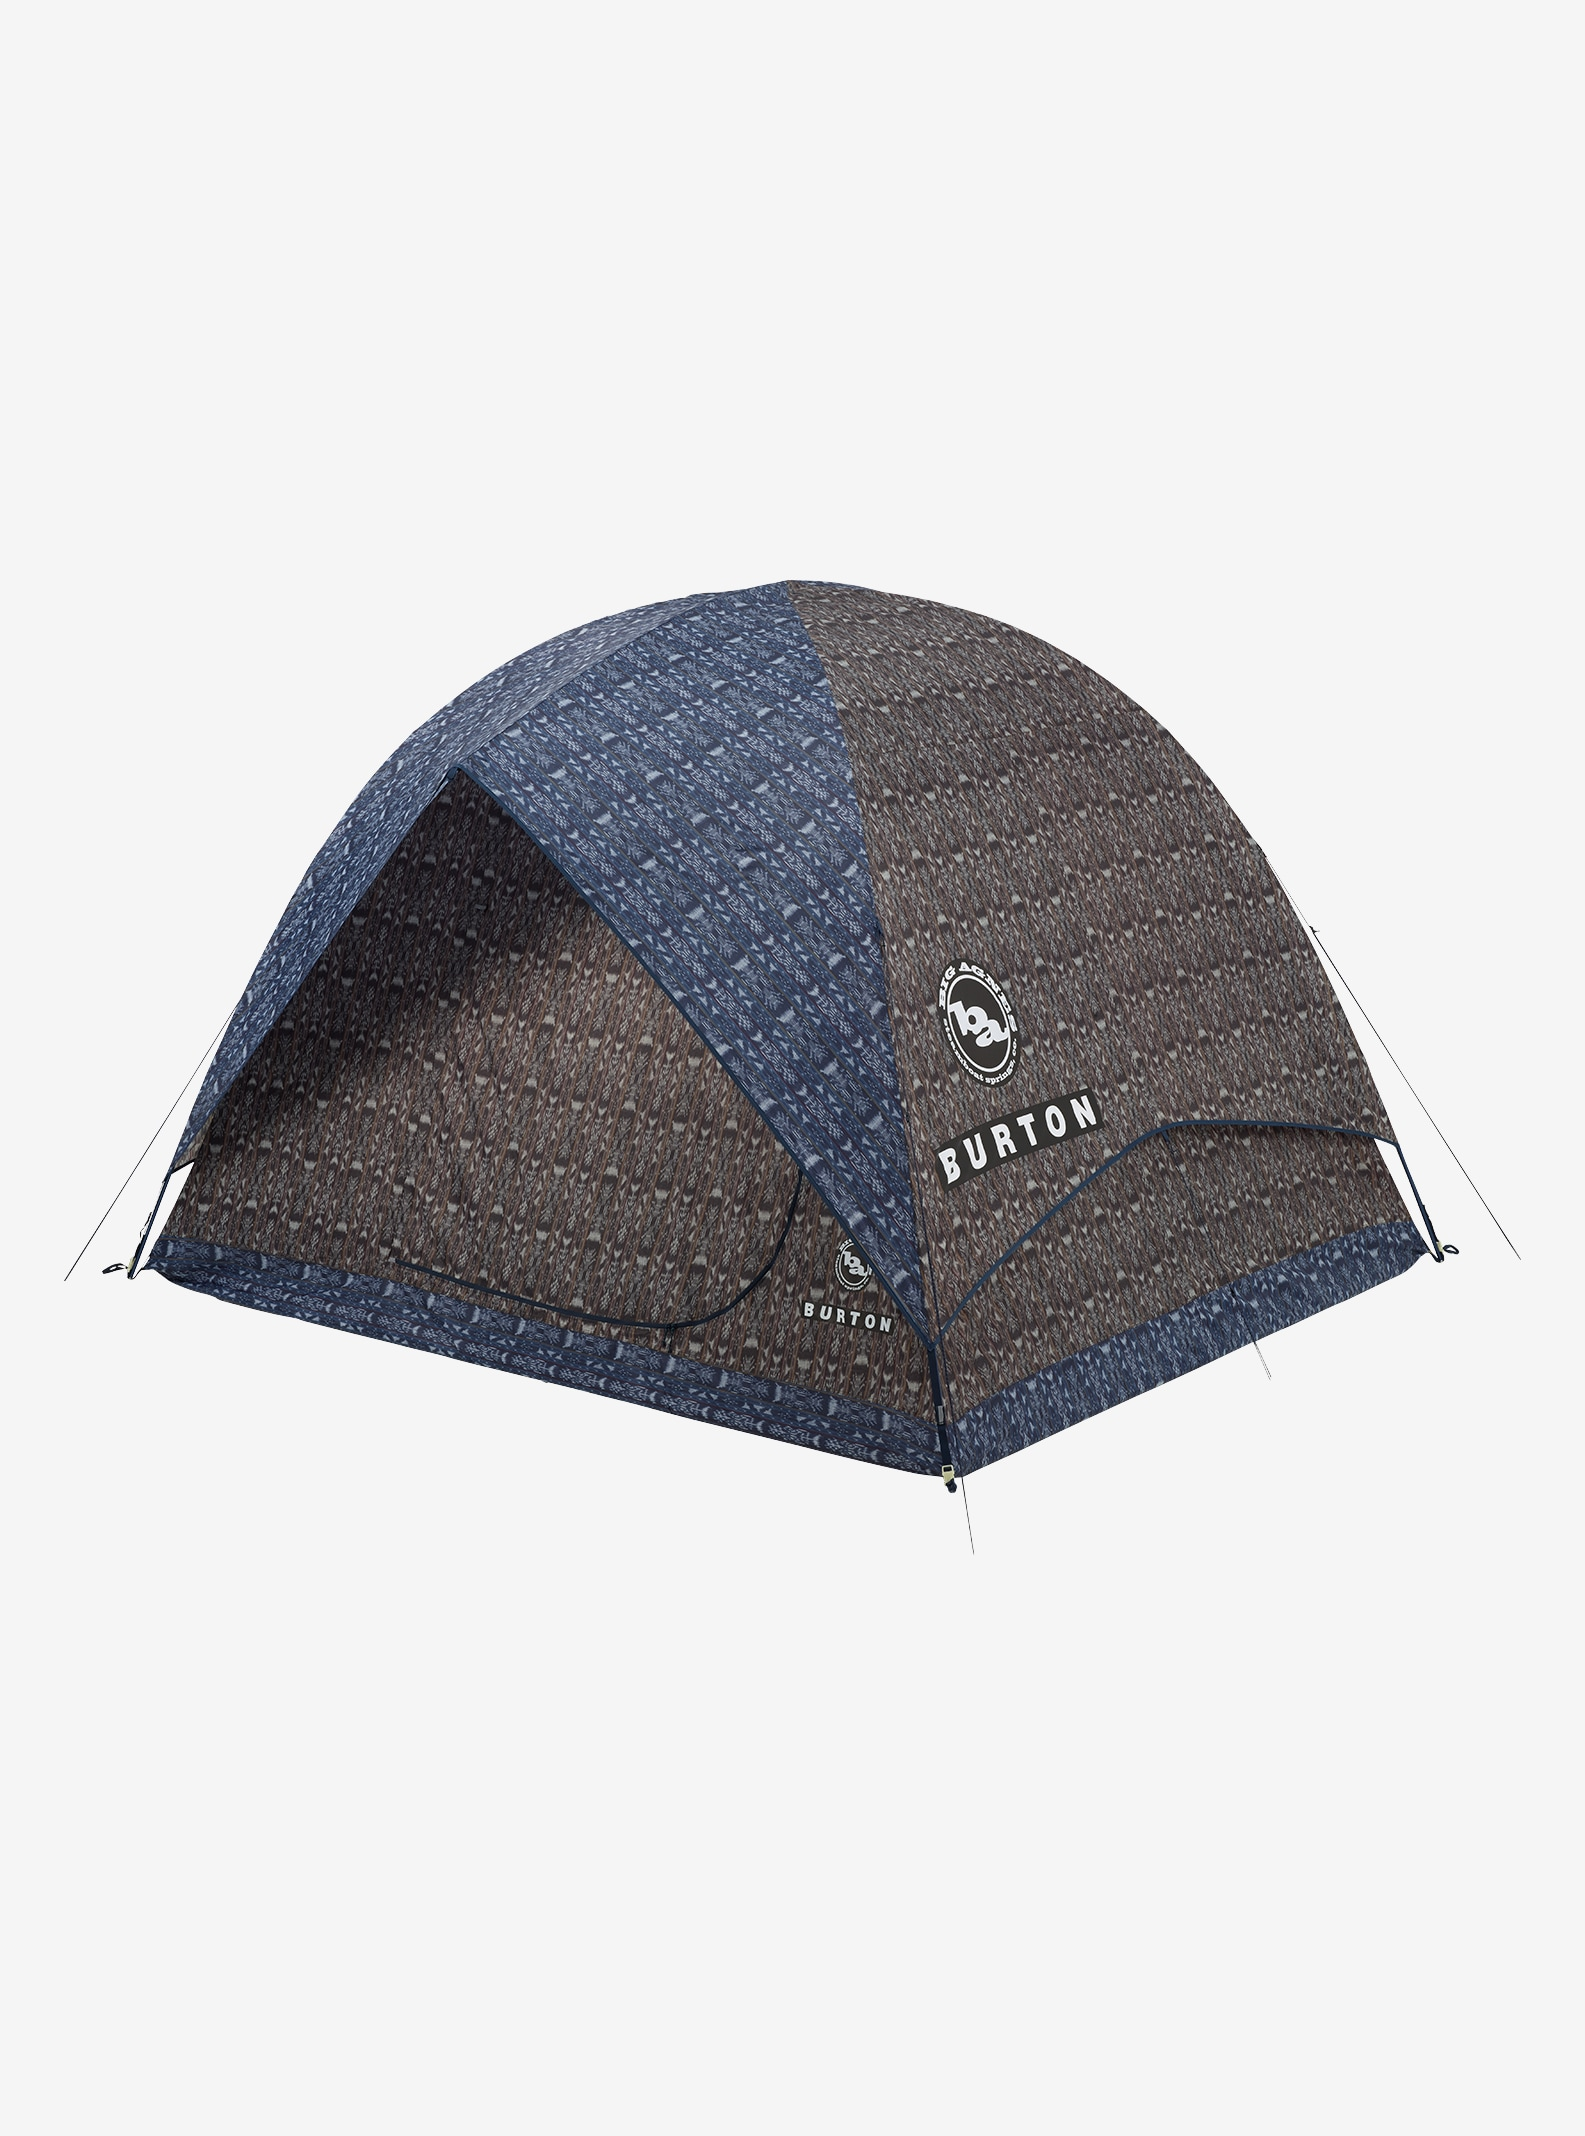 Big Agnes x Rabbit Ears 6 Tent shown in Guatikat Print